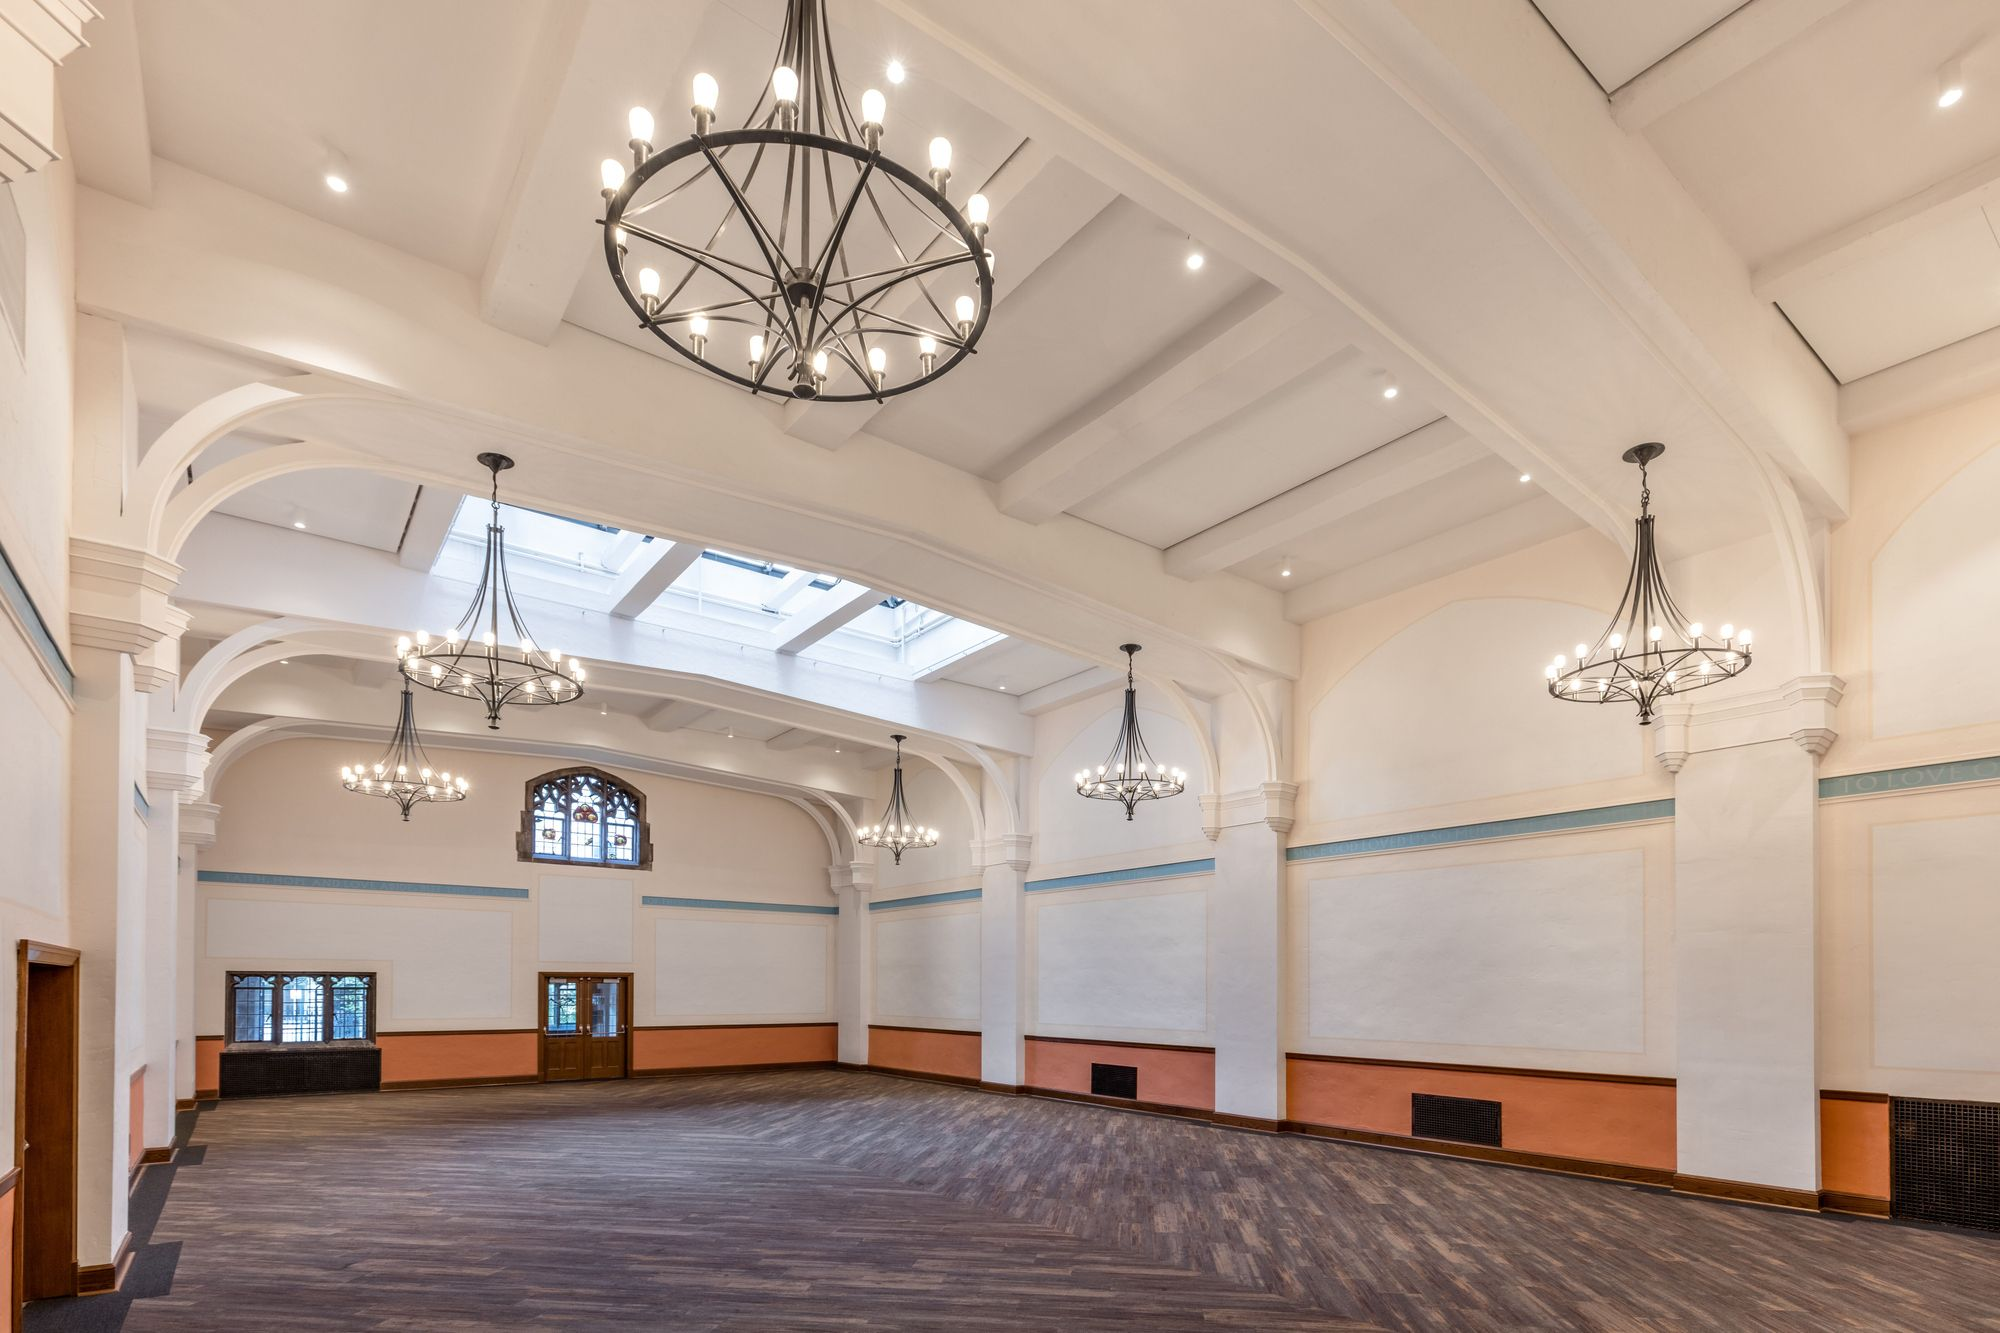 Church Amenity Space Venue Rental Built In Speakers Commercial Kitchen